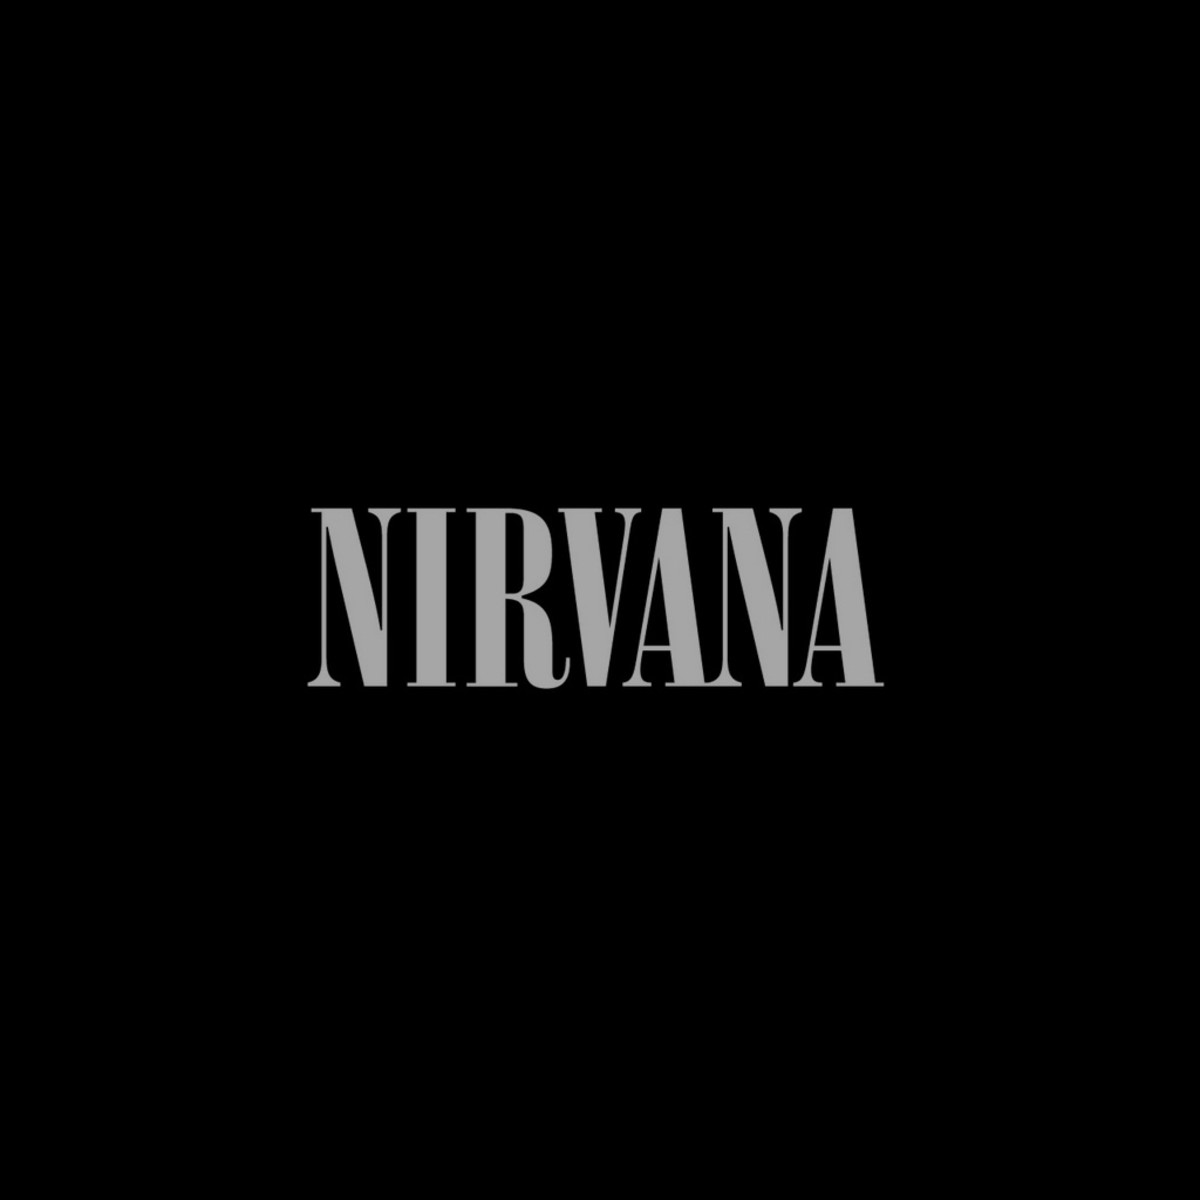 5 Essential Previously Unreleased Nirvana Songs